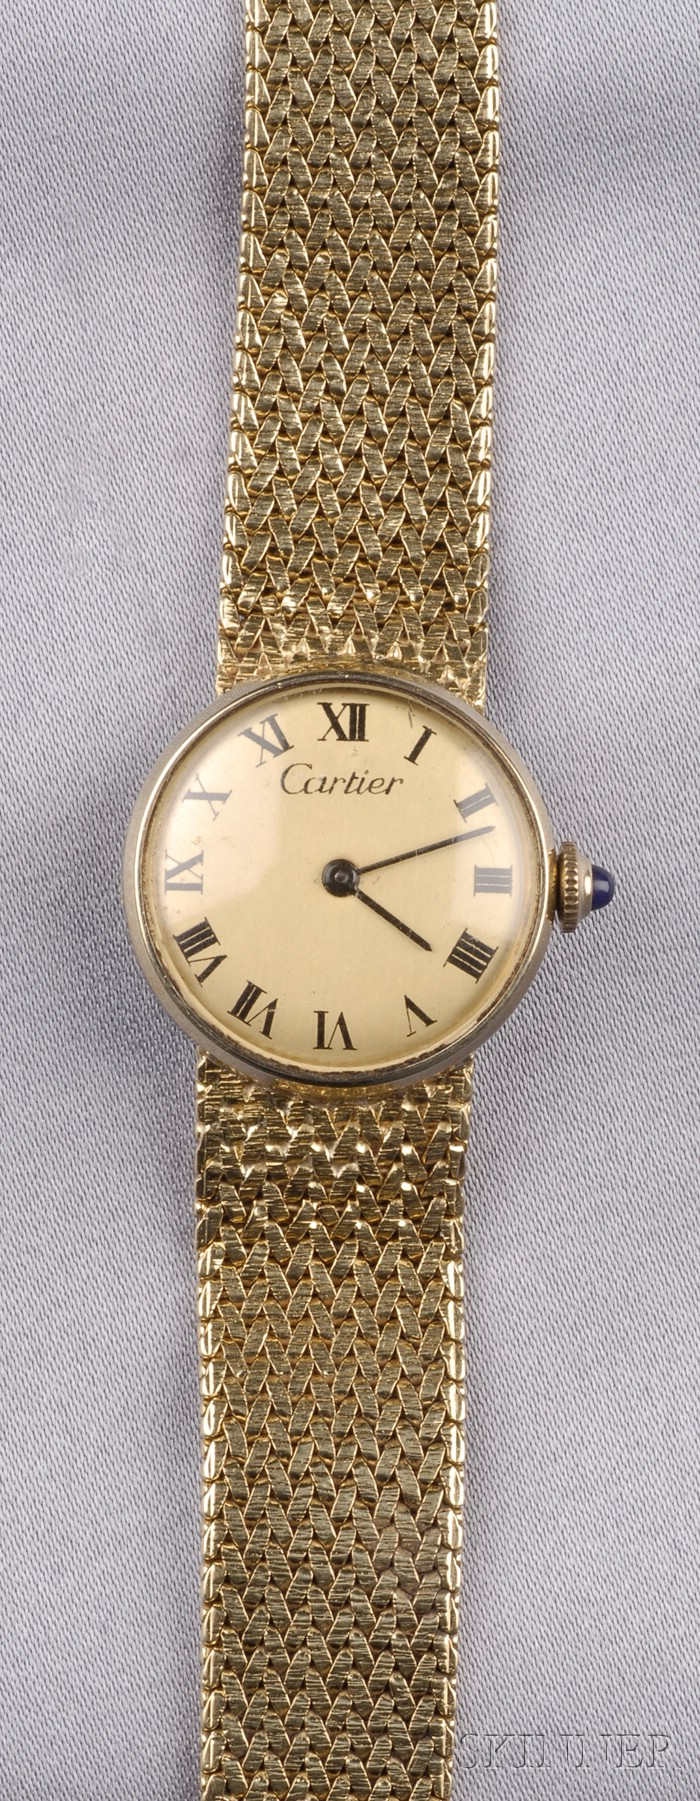 Lady's 14kt Gold Wristwatch, Cartier